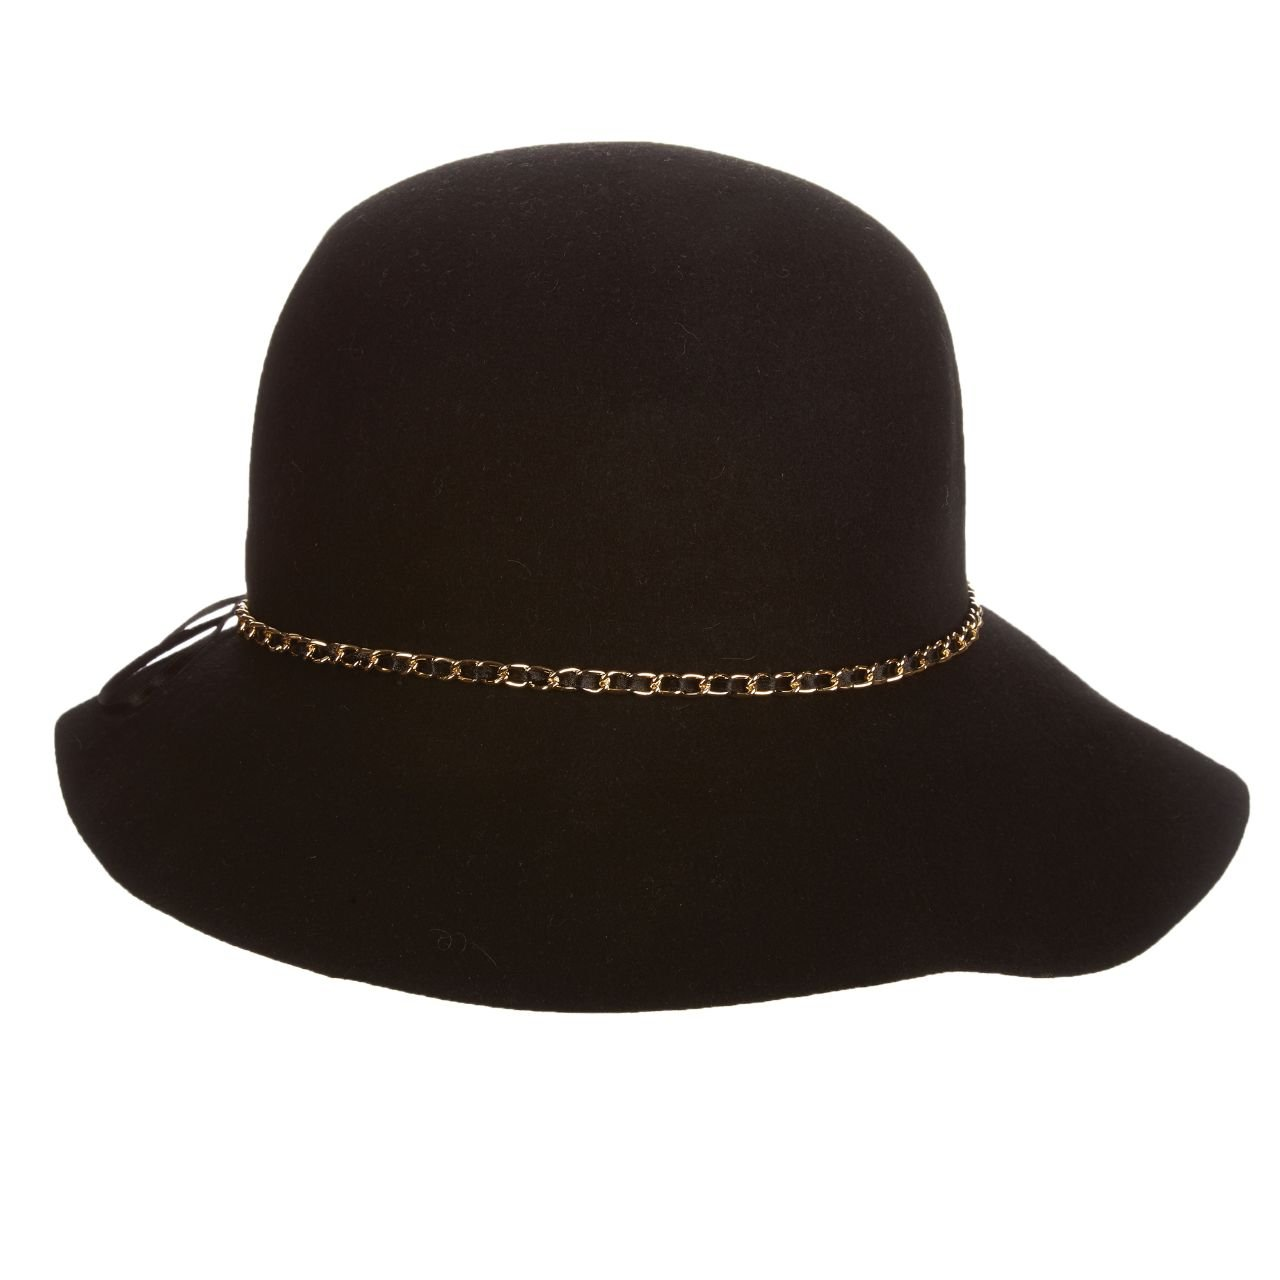 SCALA Wool Felt Cloche with Chain HAT (Black)